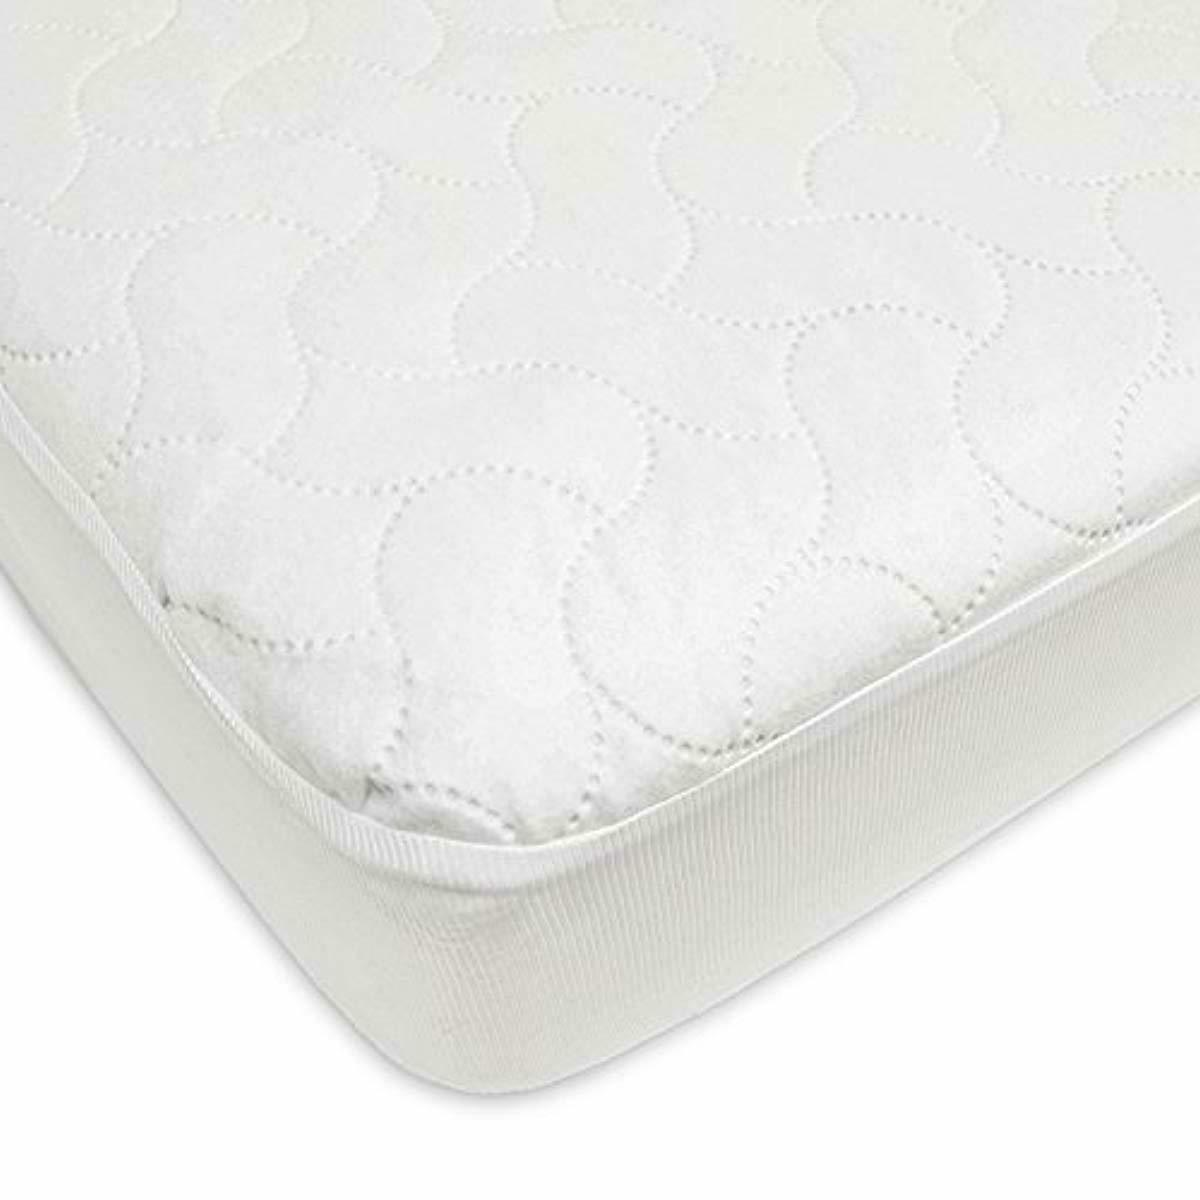 american baby company waterproof fitted crib